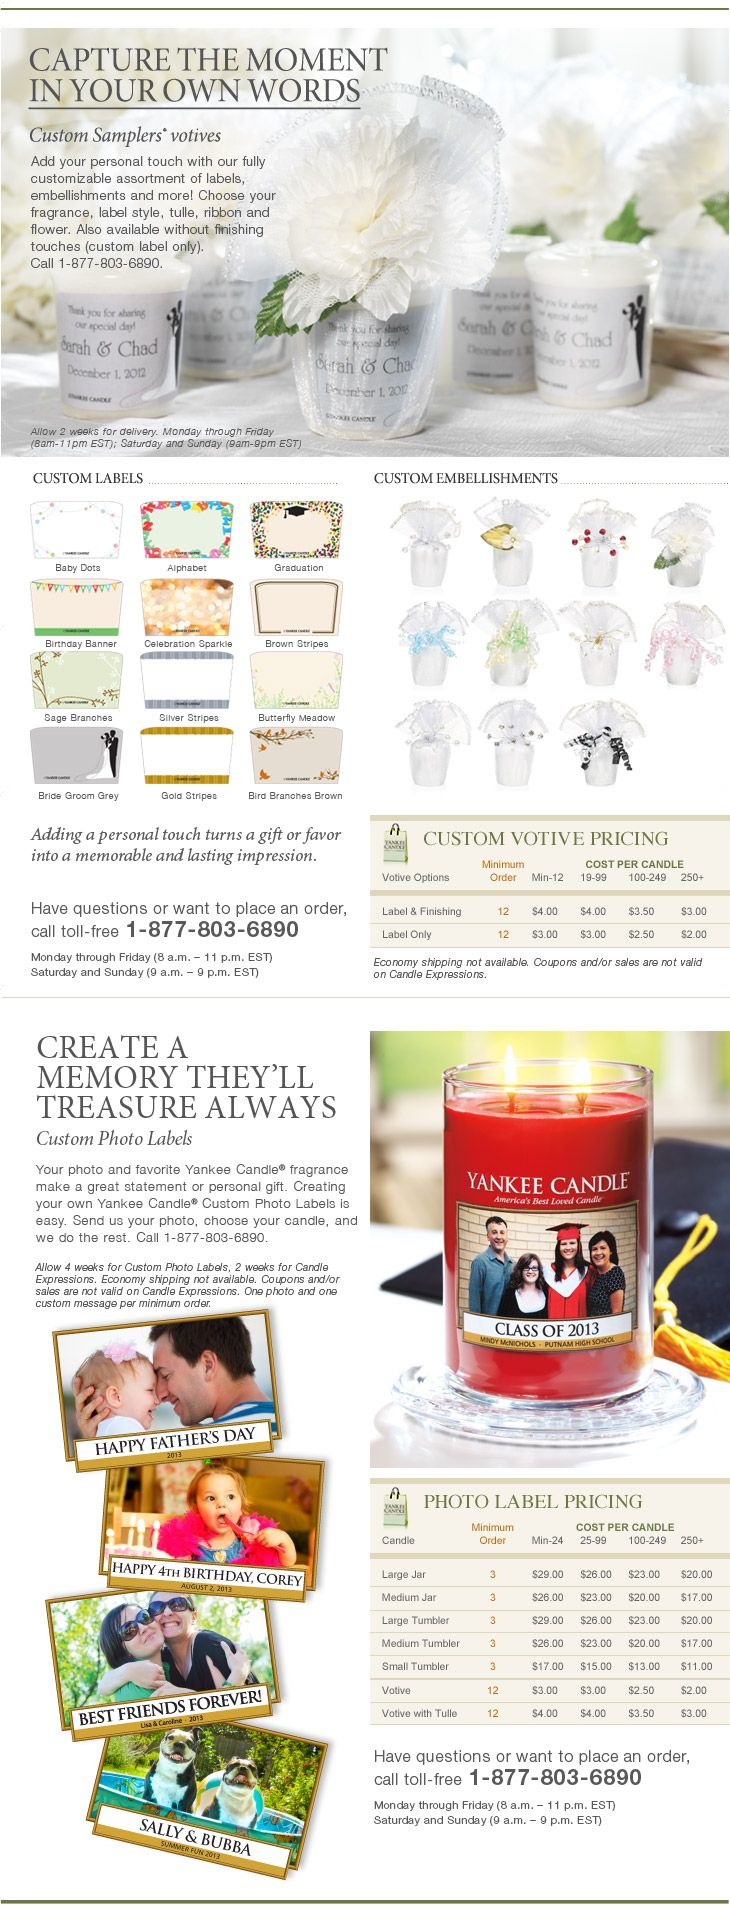 1000+ images about Yankee Candle on Pinterest | Jars, Pull toy and ...